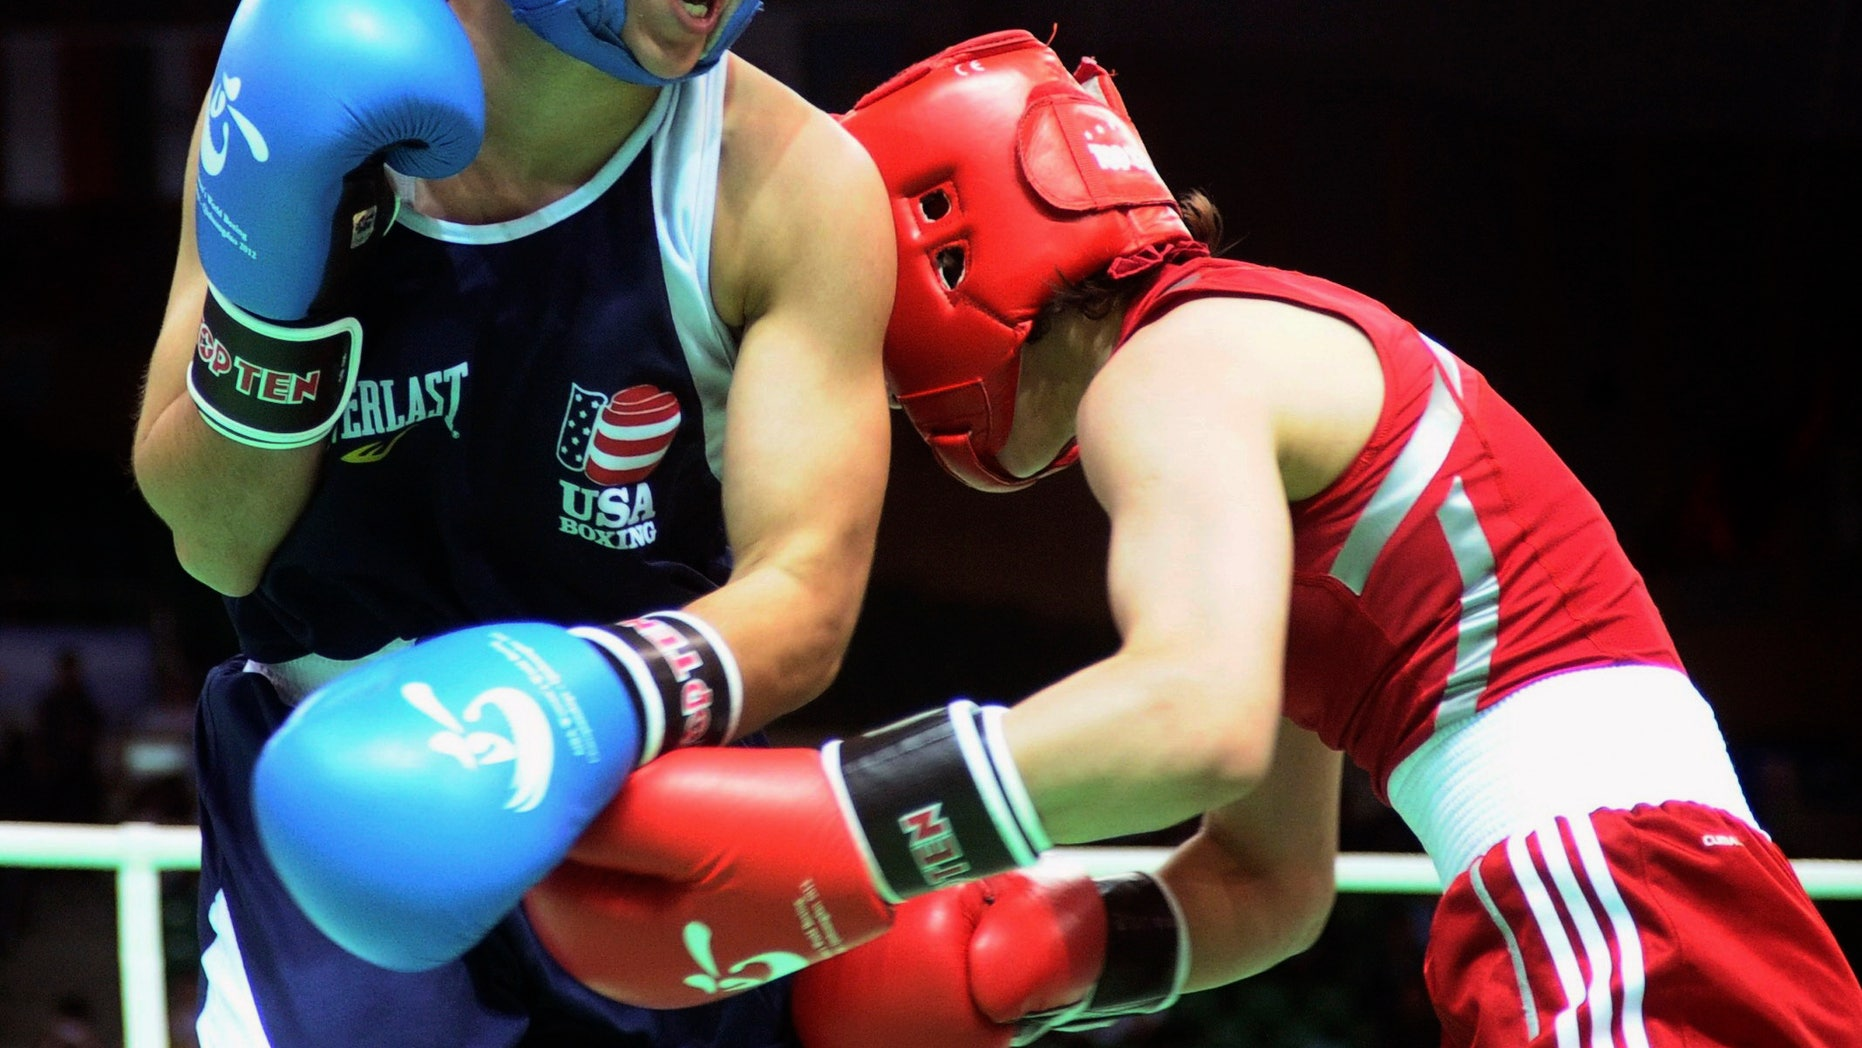 May 15, 2012: Marlen Esparza of the United States, left, fights with Thi Duyen Luu of Vietnam during their women's flyweight category preliminary match of the AIBA World Women's Boxing Championships in Qinhuangdao, north China's Hebei province.